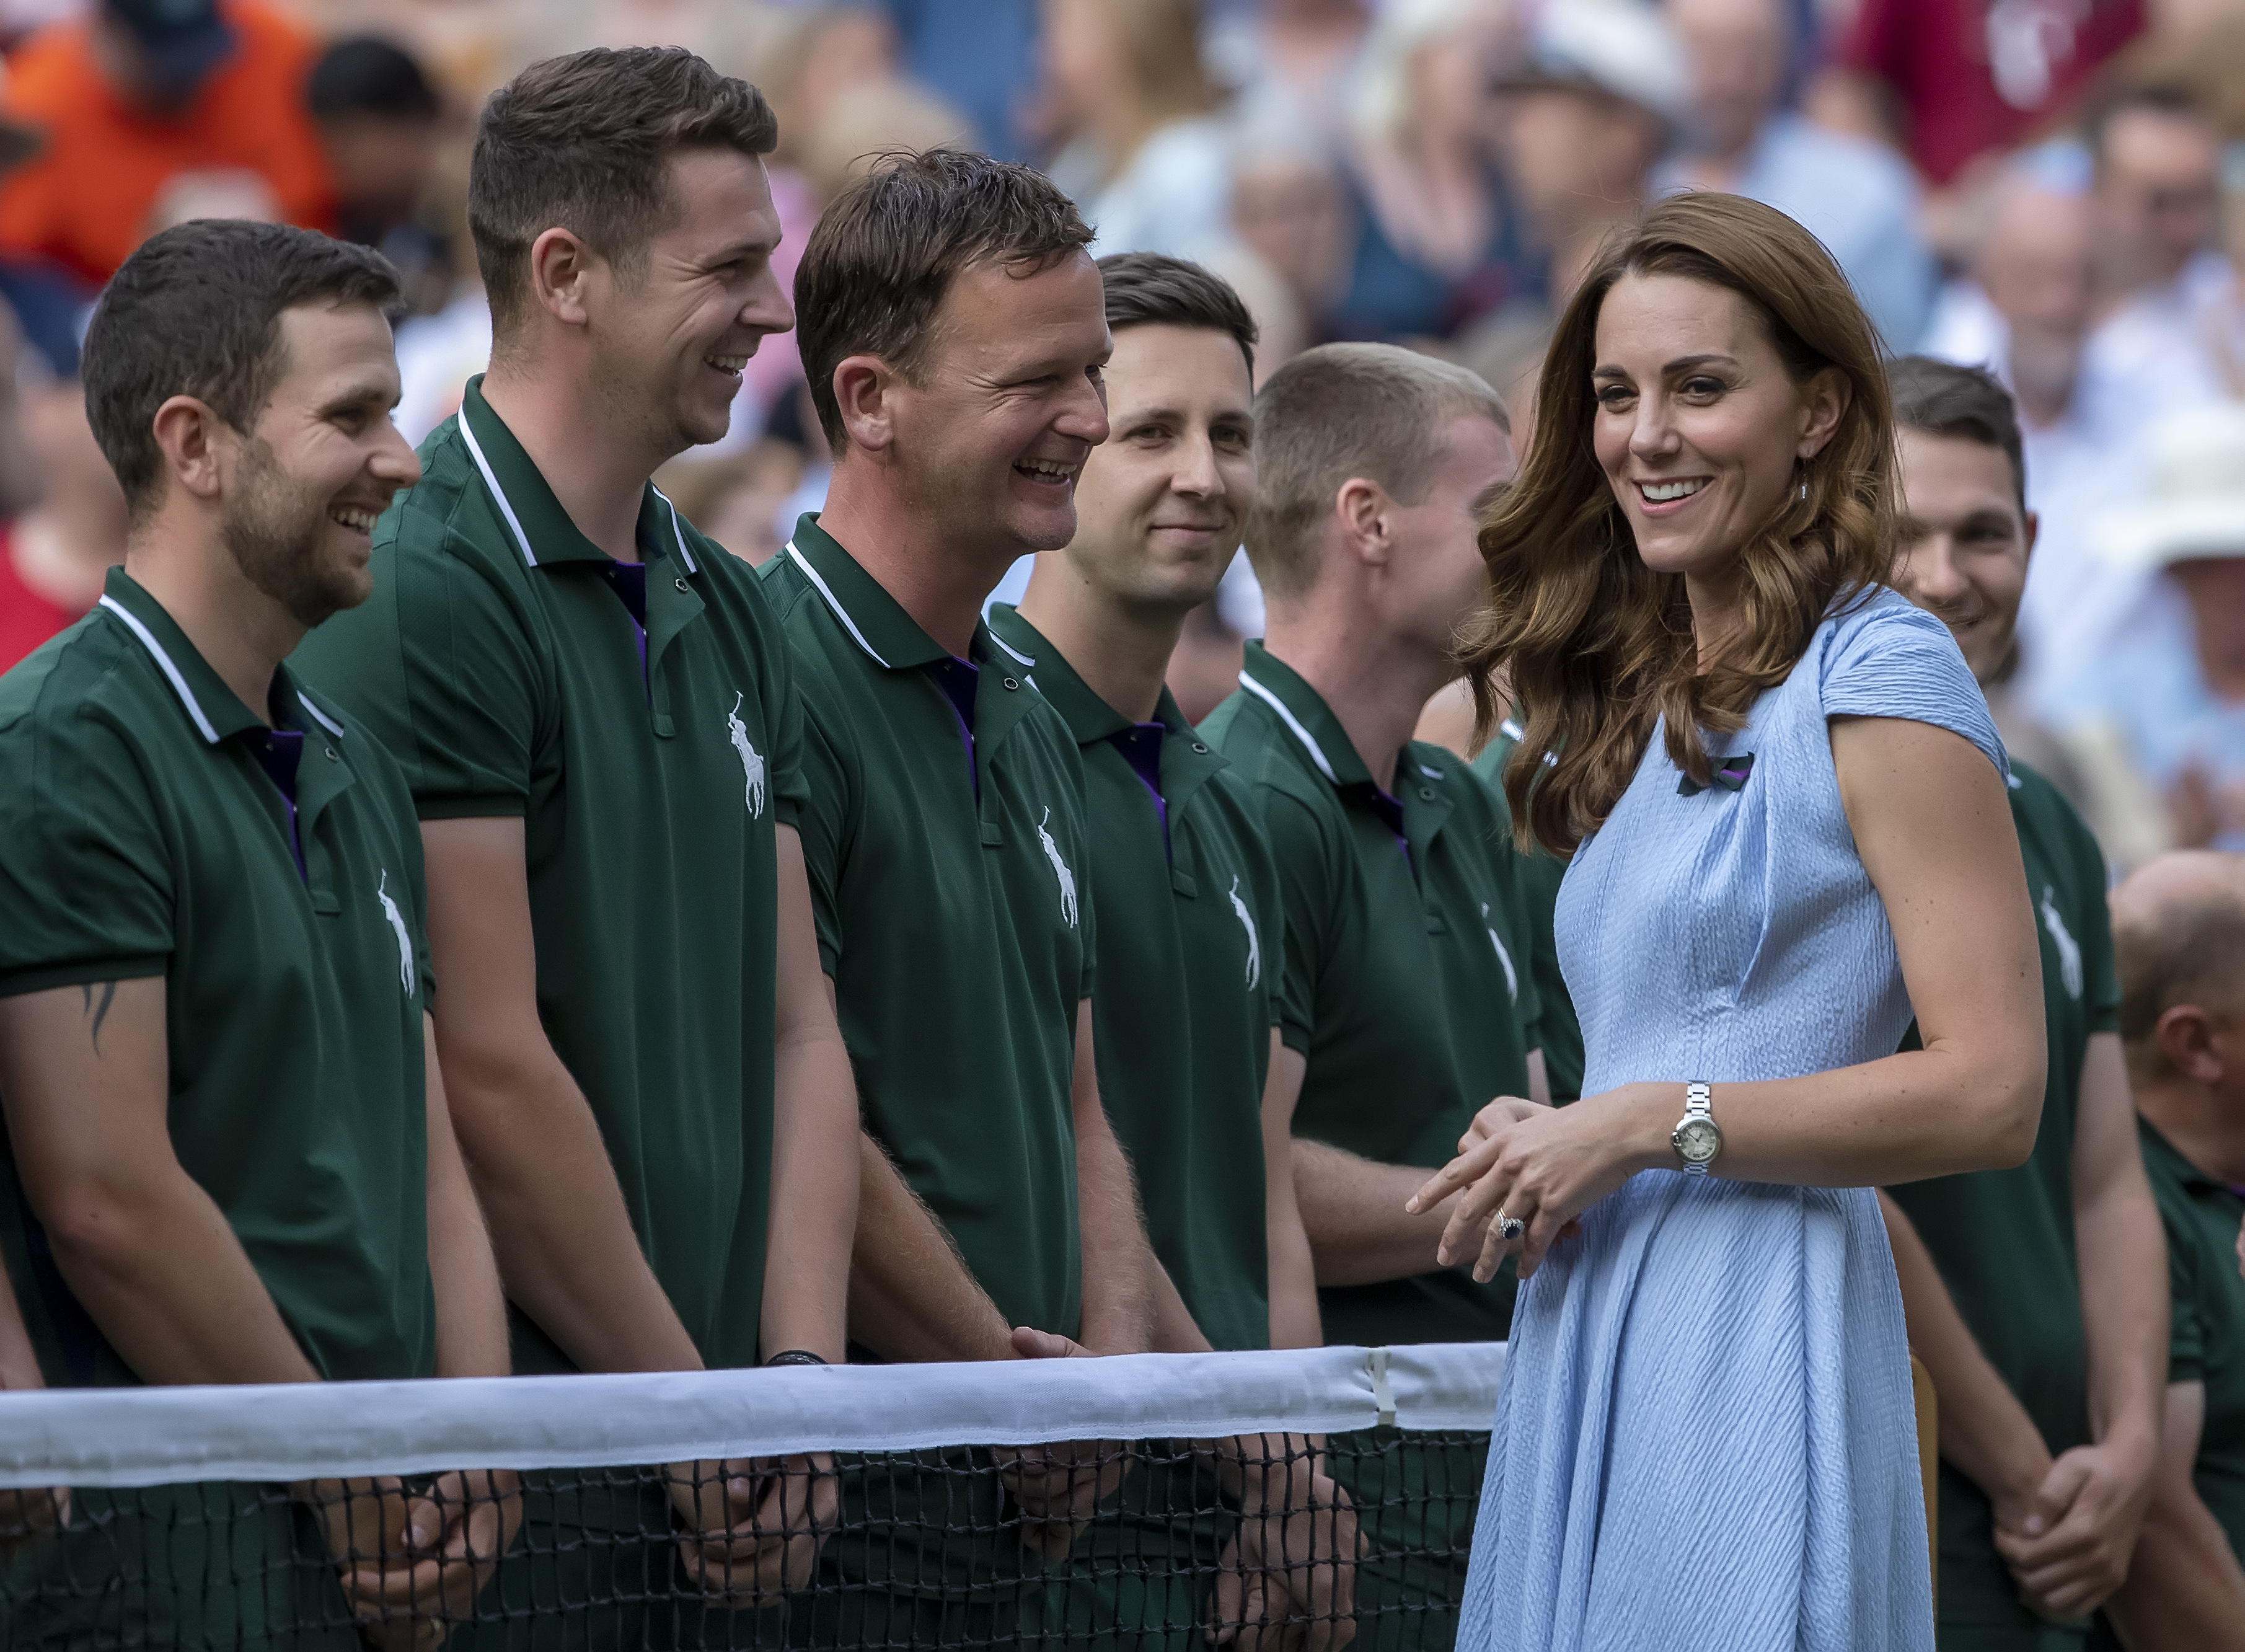 14th July 2019, The All England Lawn Tennis and Croquet Club, Wimbledon, England, Wimbledon Tennis Tournament, Day 13, mens singles final; Catherine Duchess of Cambridge speaks with the Wimbledon groundsmen (photo by Shaun Brooks/Action Plus via Getty Images)